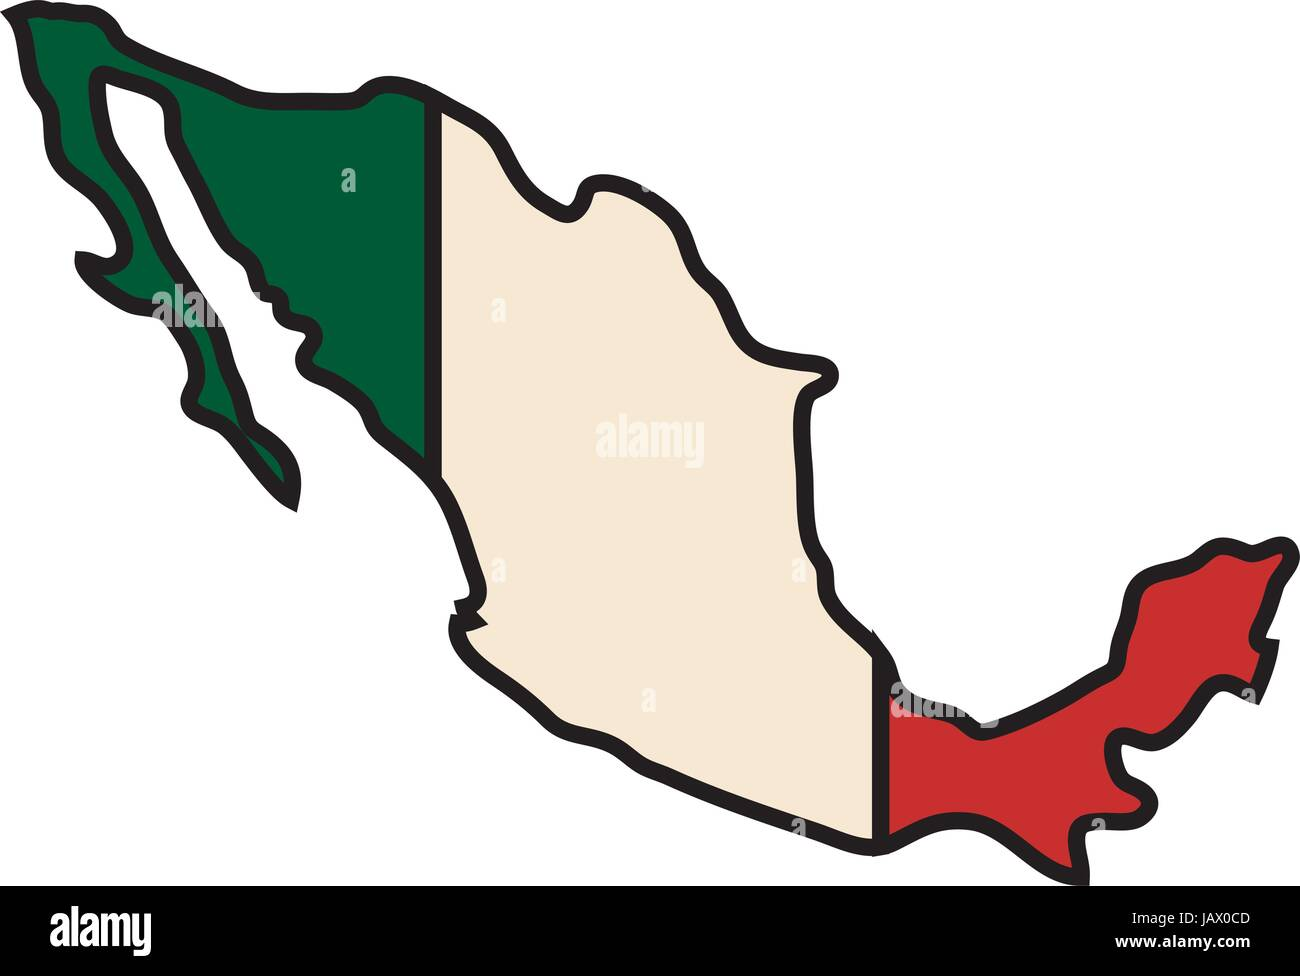 Mexico Country Map Icon Stock Vector Art Amp Illustration